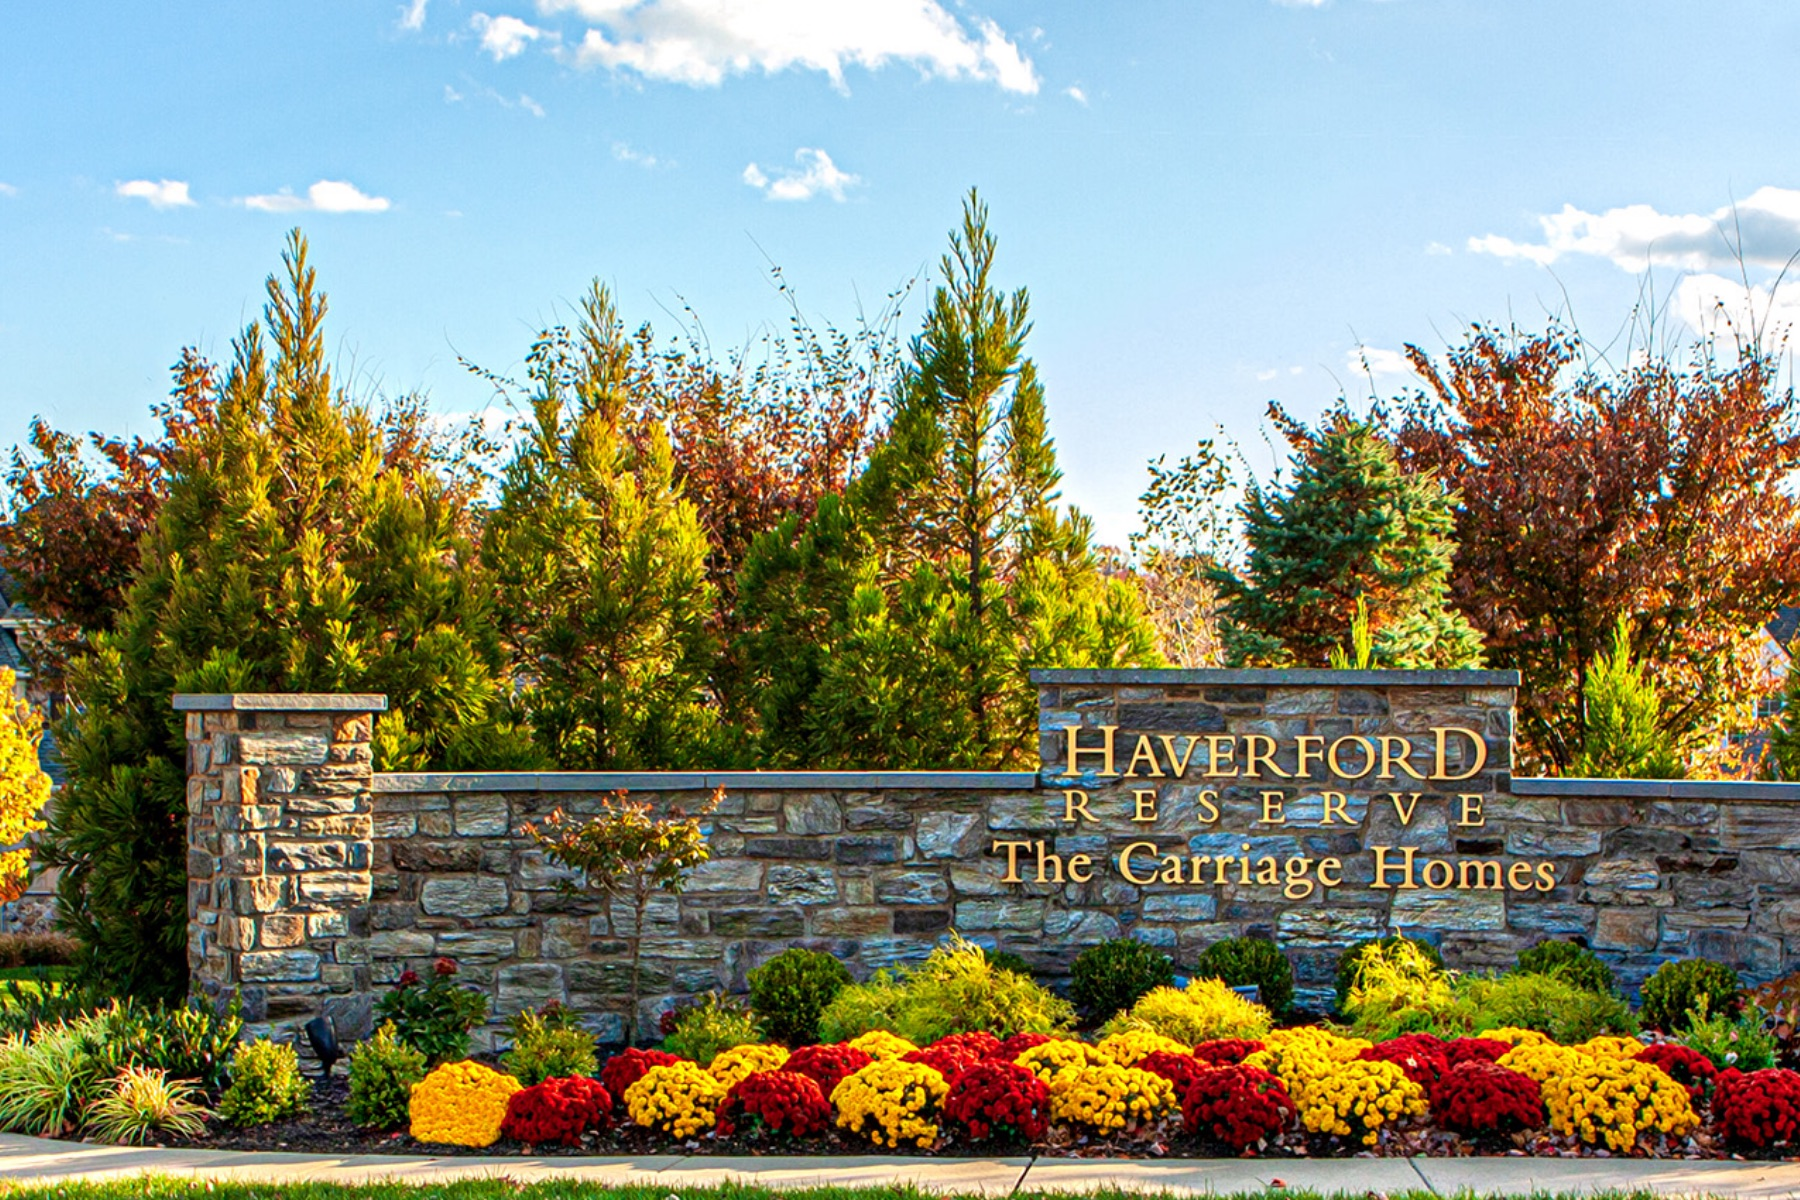 Entrance sign to the Carriage Homes at Haverford Reserve